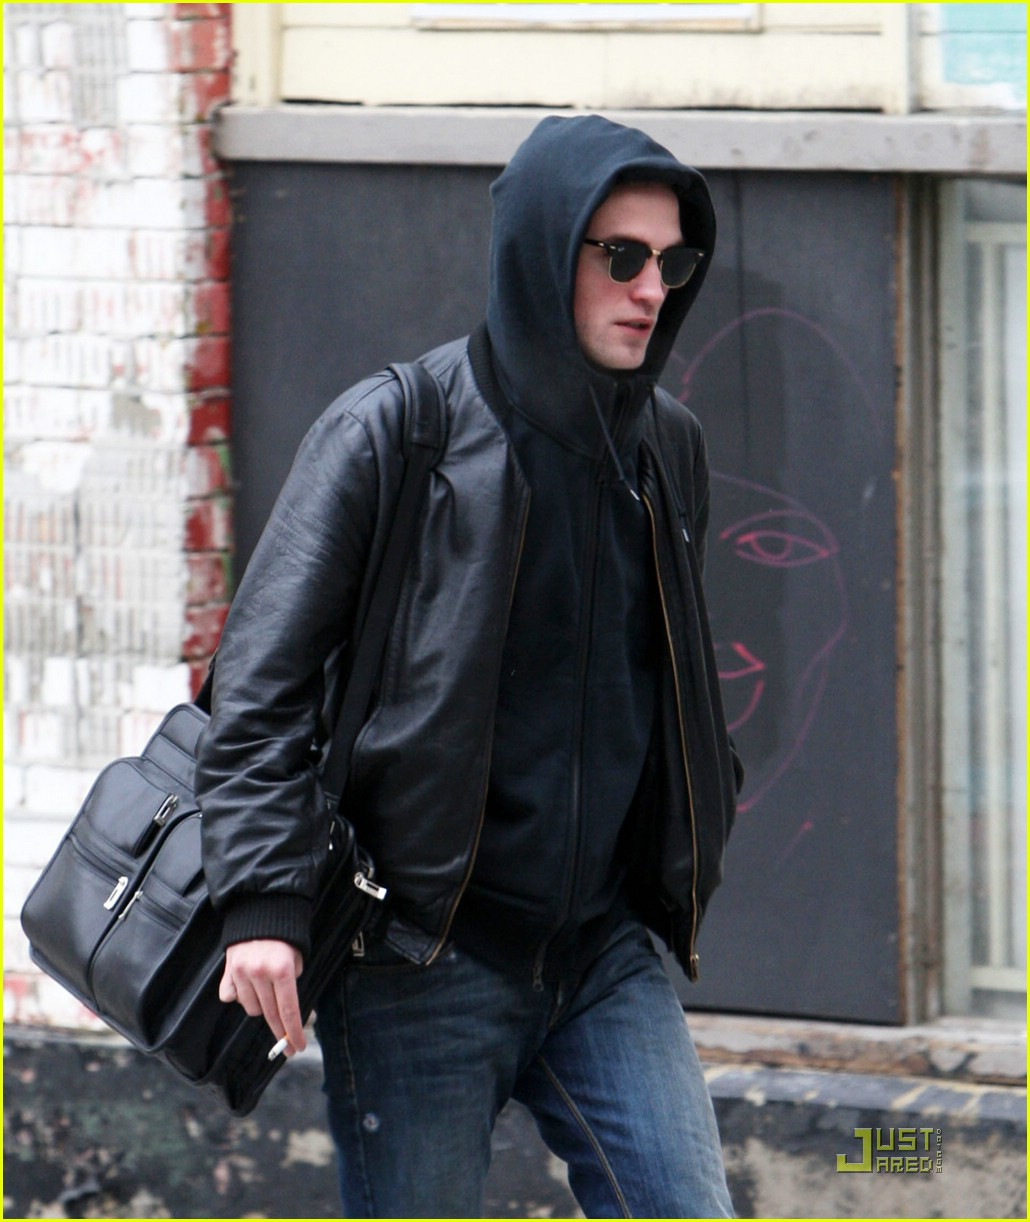 robert pattinson smoking 01